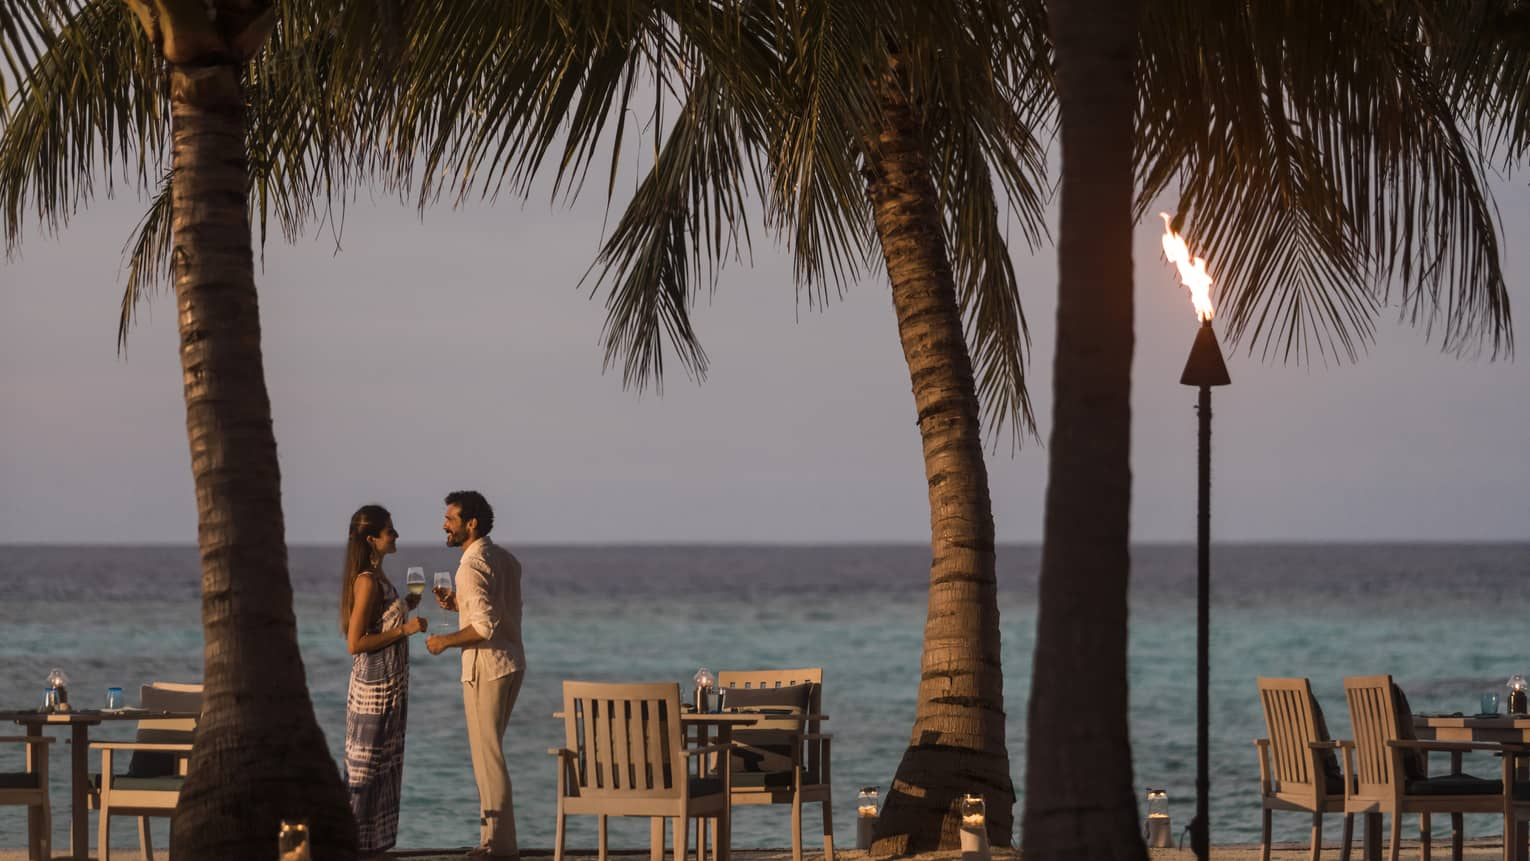 A couple talks on the beach at sunset, a tiki torch burns, table and chairs sit on beach